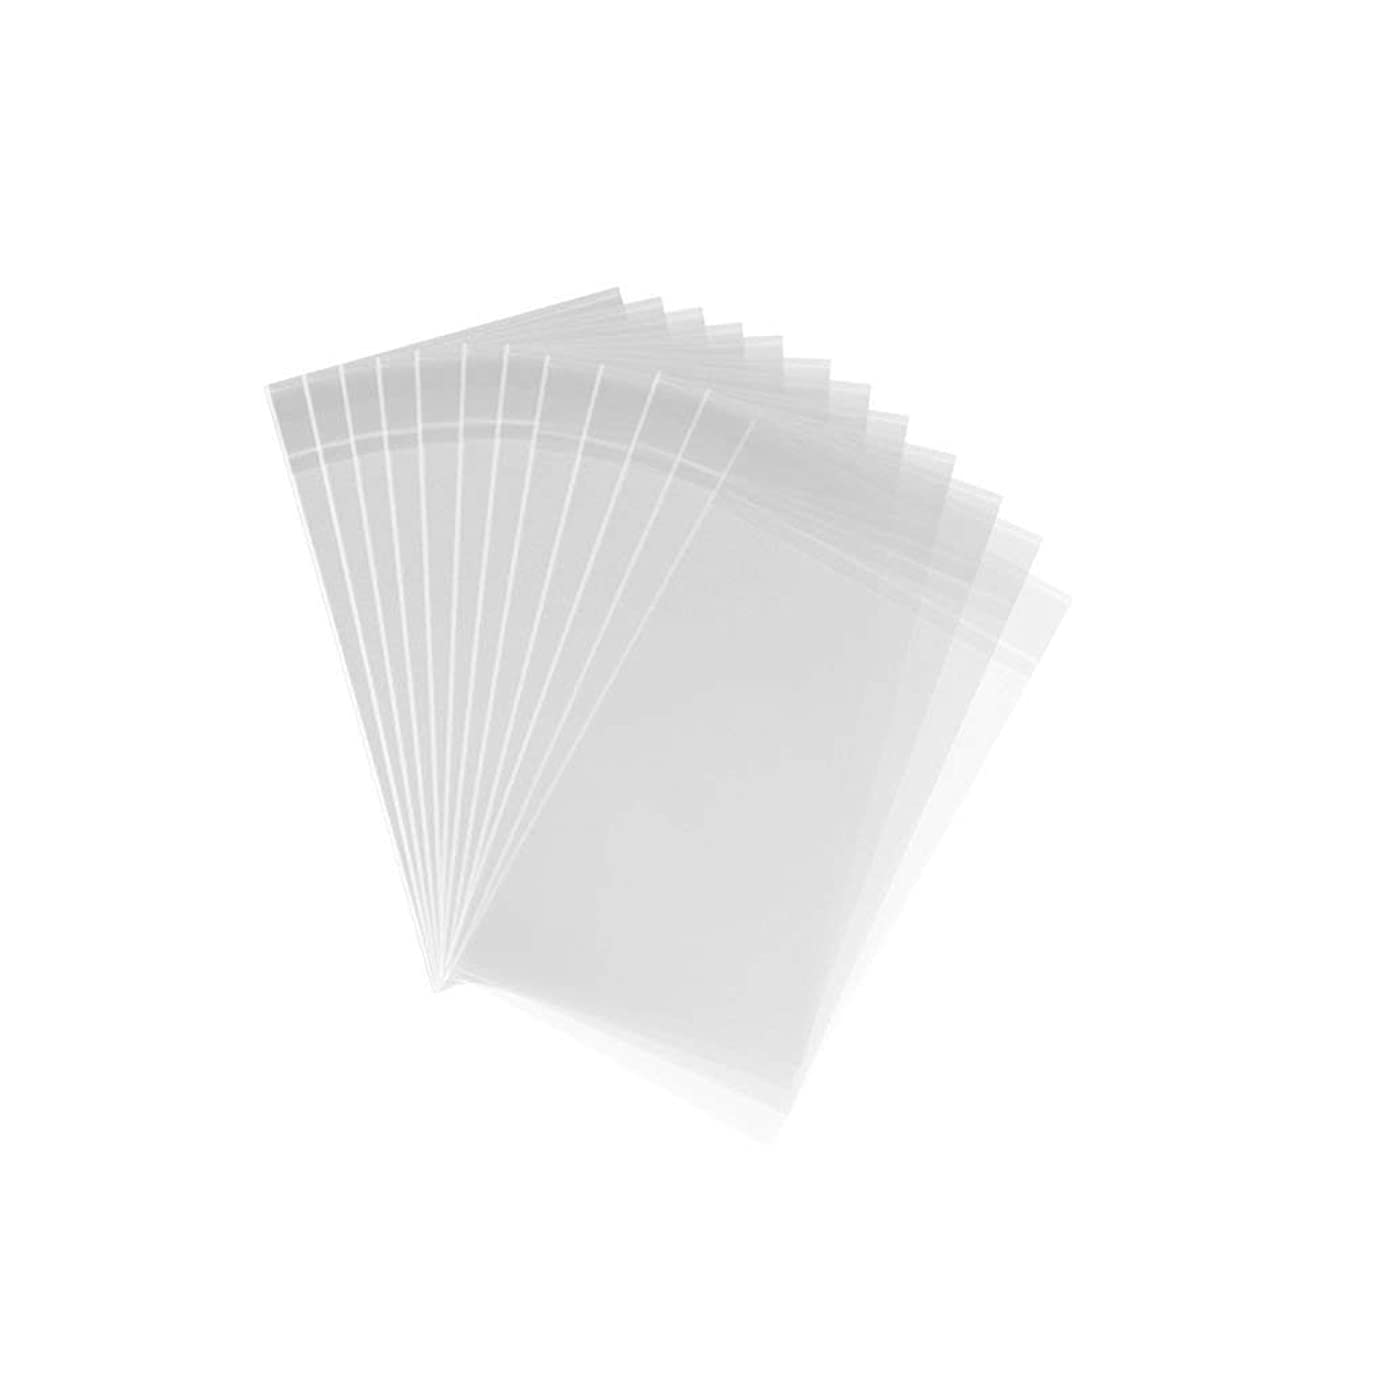 1,000 Crystal Clear 4 x 6 Resealable Cellophane Bags - 1.5 Mil Thick Self Sealing PP Poly Bags for Jewelry, Candy & Baked Goods (1,000-pack)